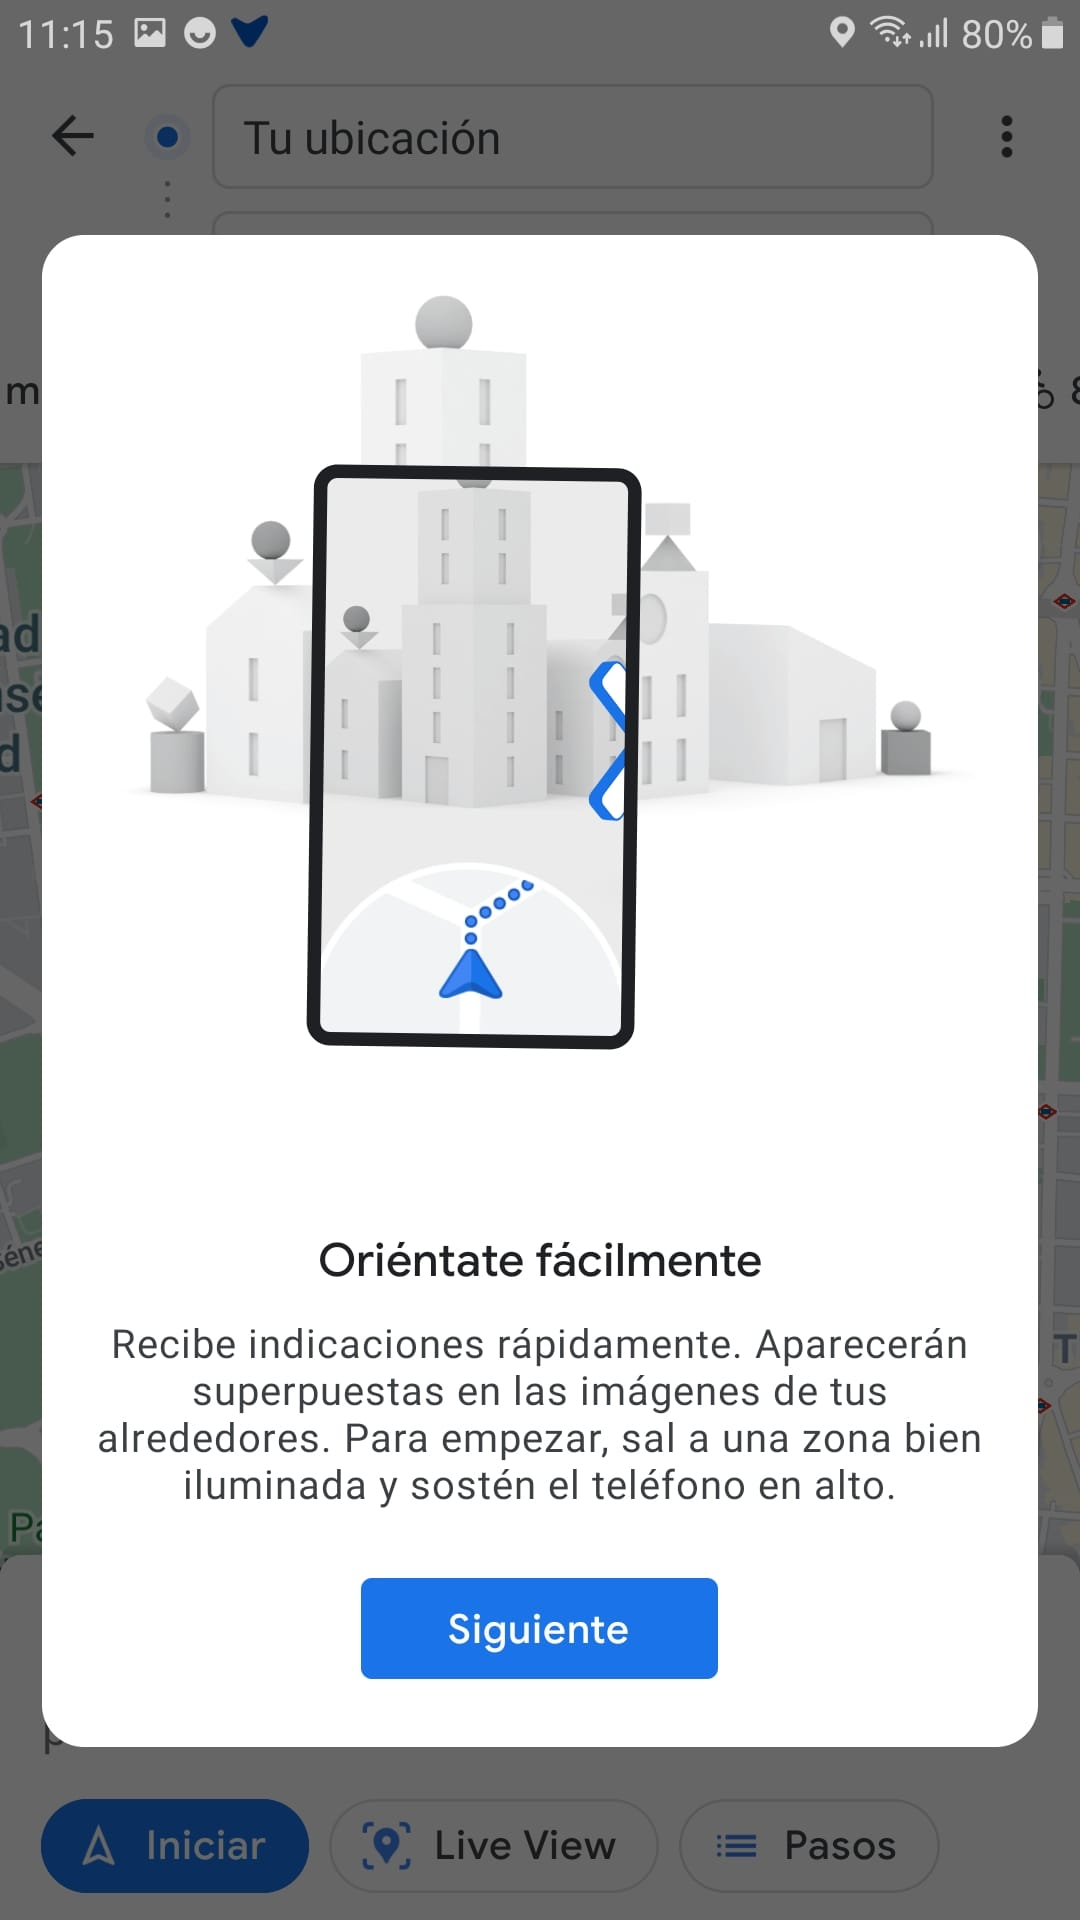 """Screenshot of a pop-up window in the app with the following message: """"Get your bearings easily. Get directions quickly. They'll be superimposed on images of your surroundings. Start out in a well-lit area and hold your phone up."""""""